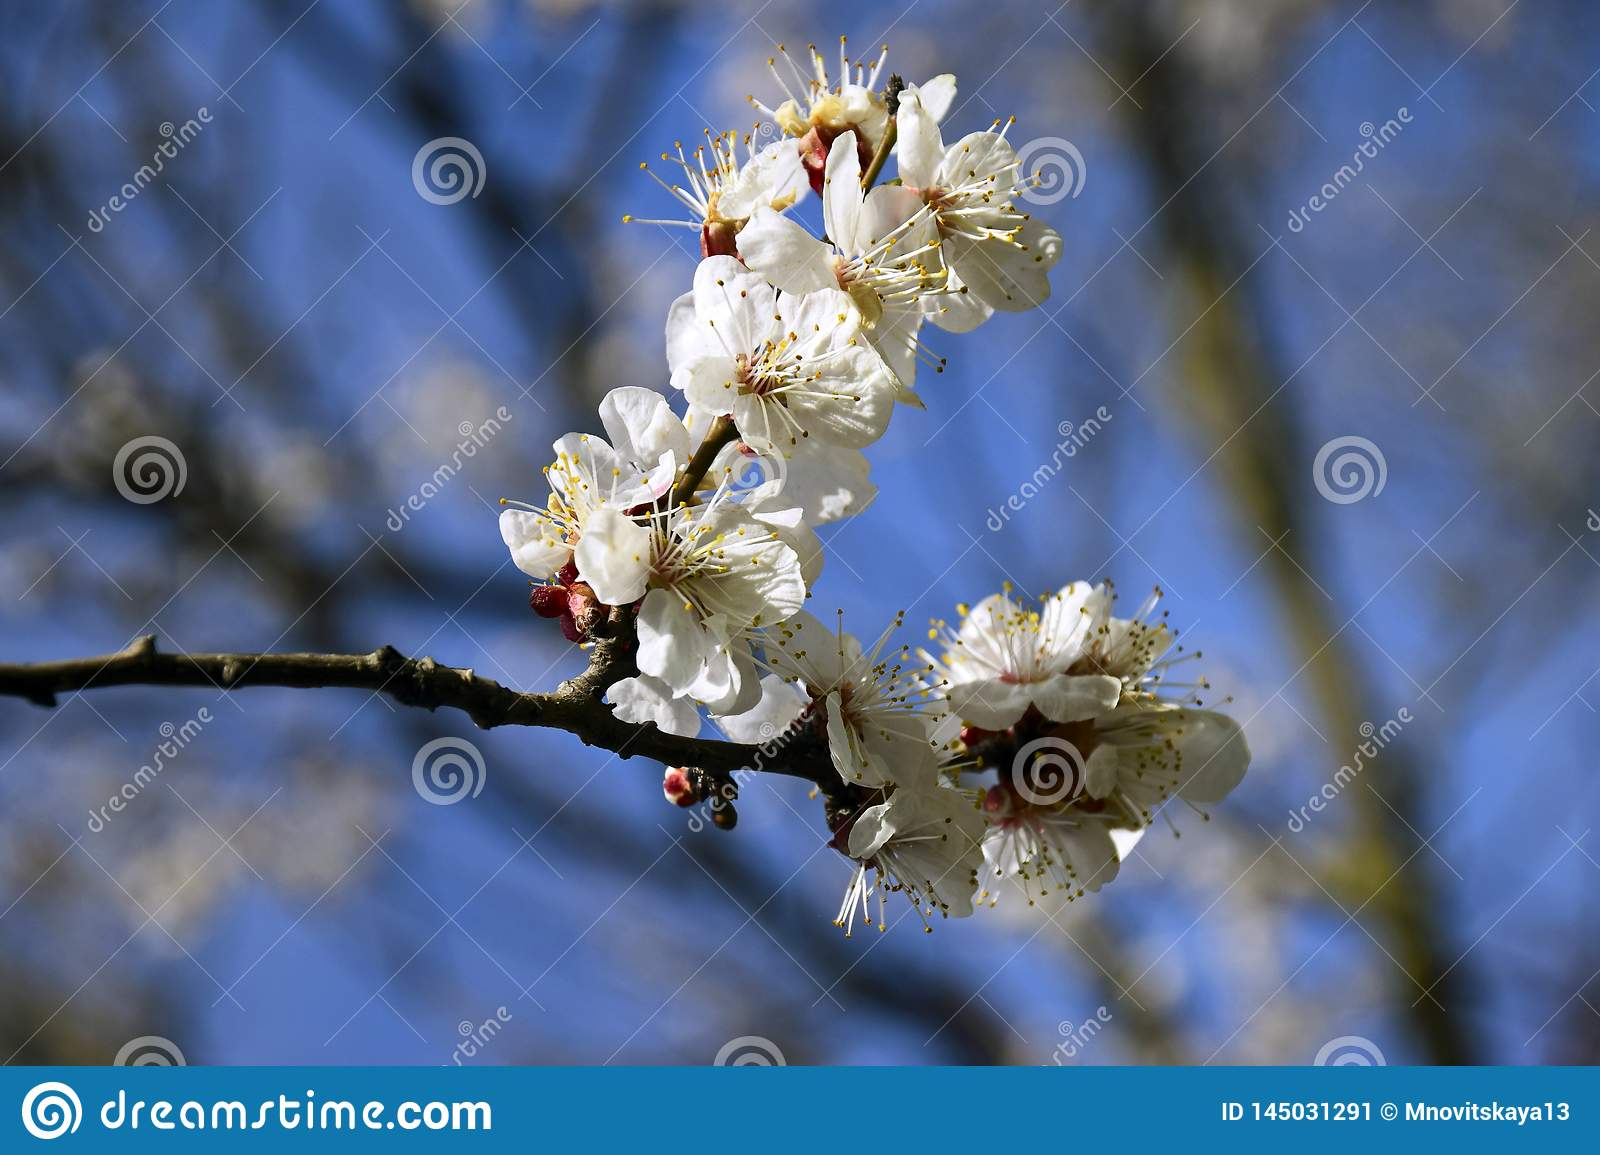 Abstract Natural Backgrounds With Blossom Delicate Apricot Flowers